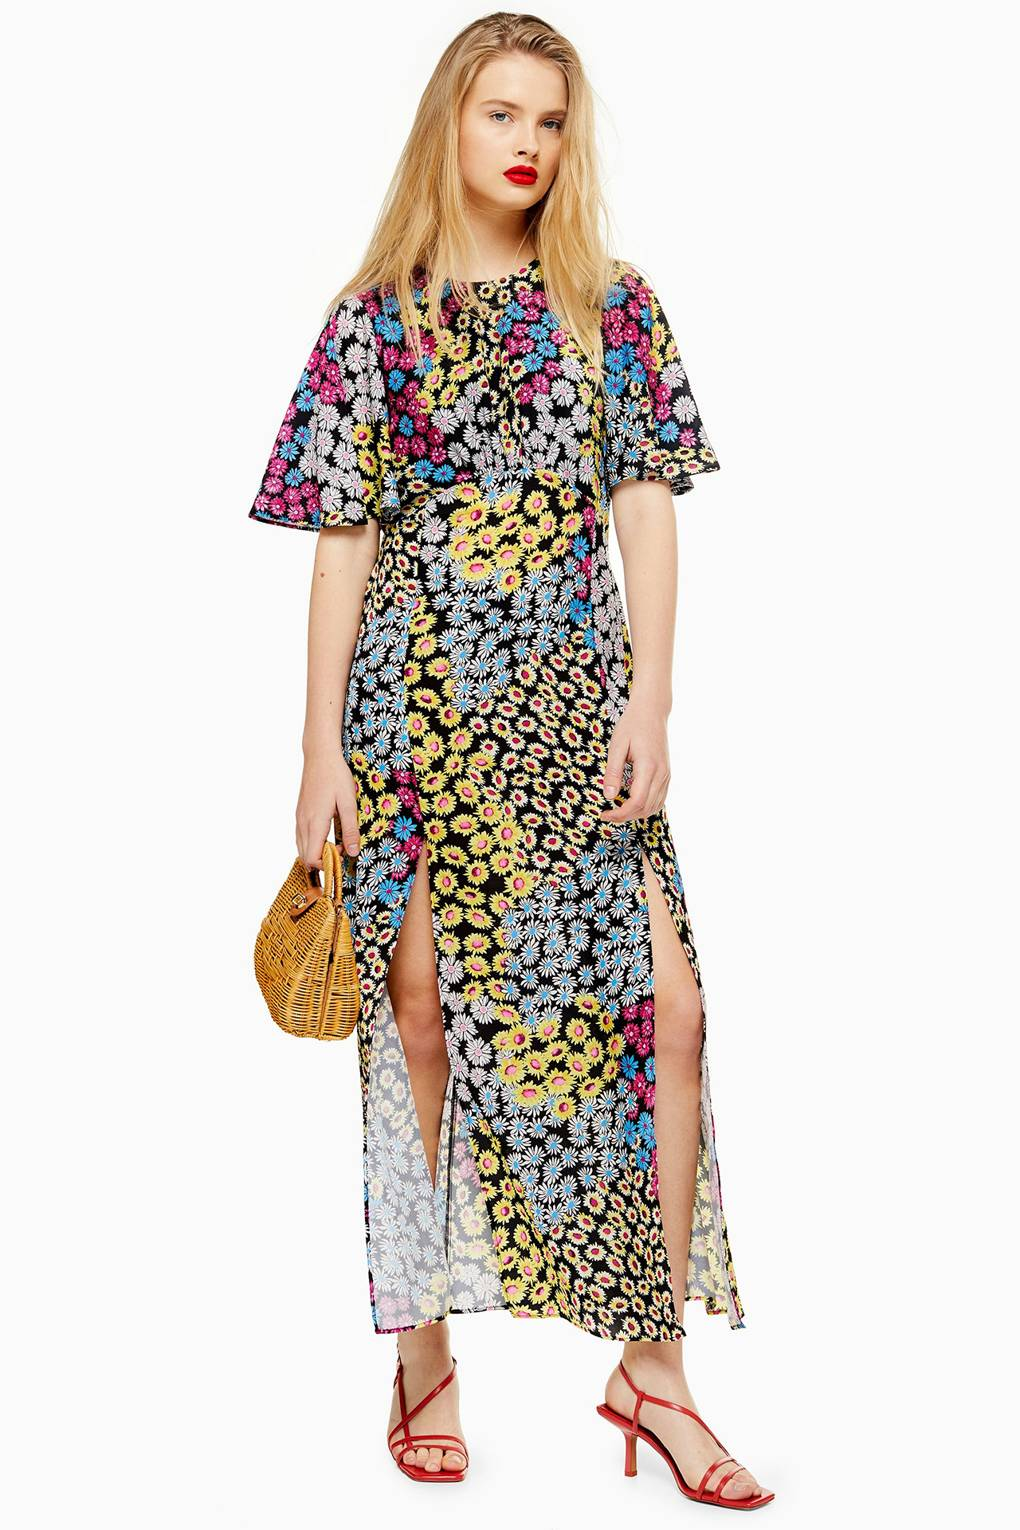 75c0adb40c39 Is This Topshop Austin Floral Print Midi Dress The It Dress Of 2019? |  Glamour UK